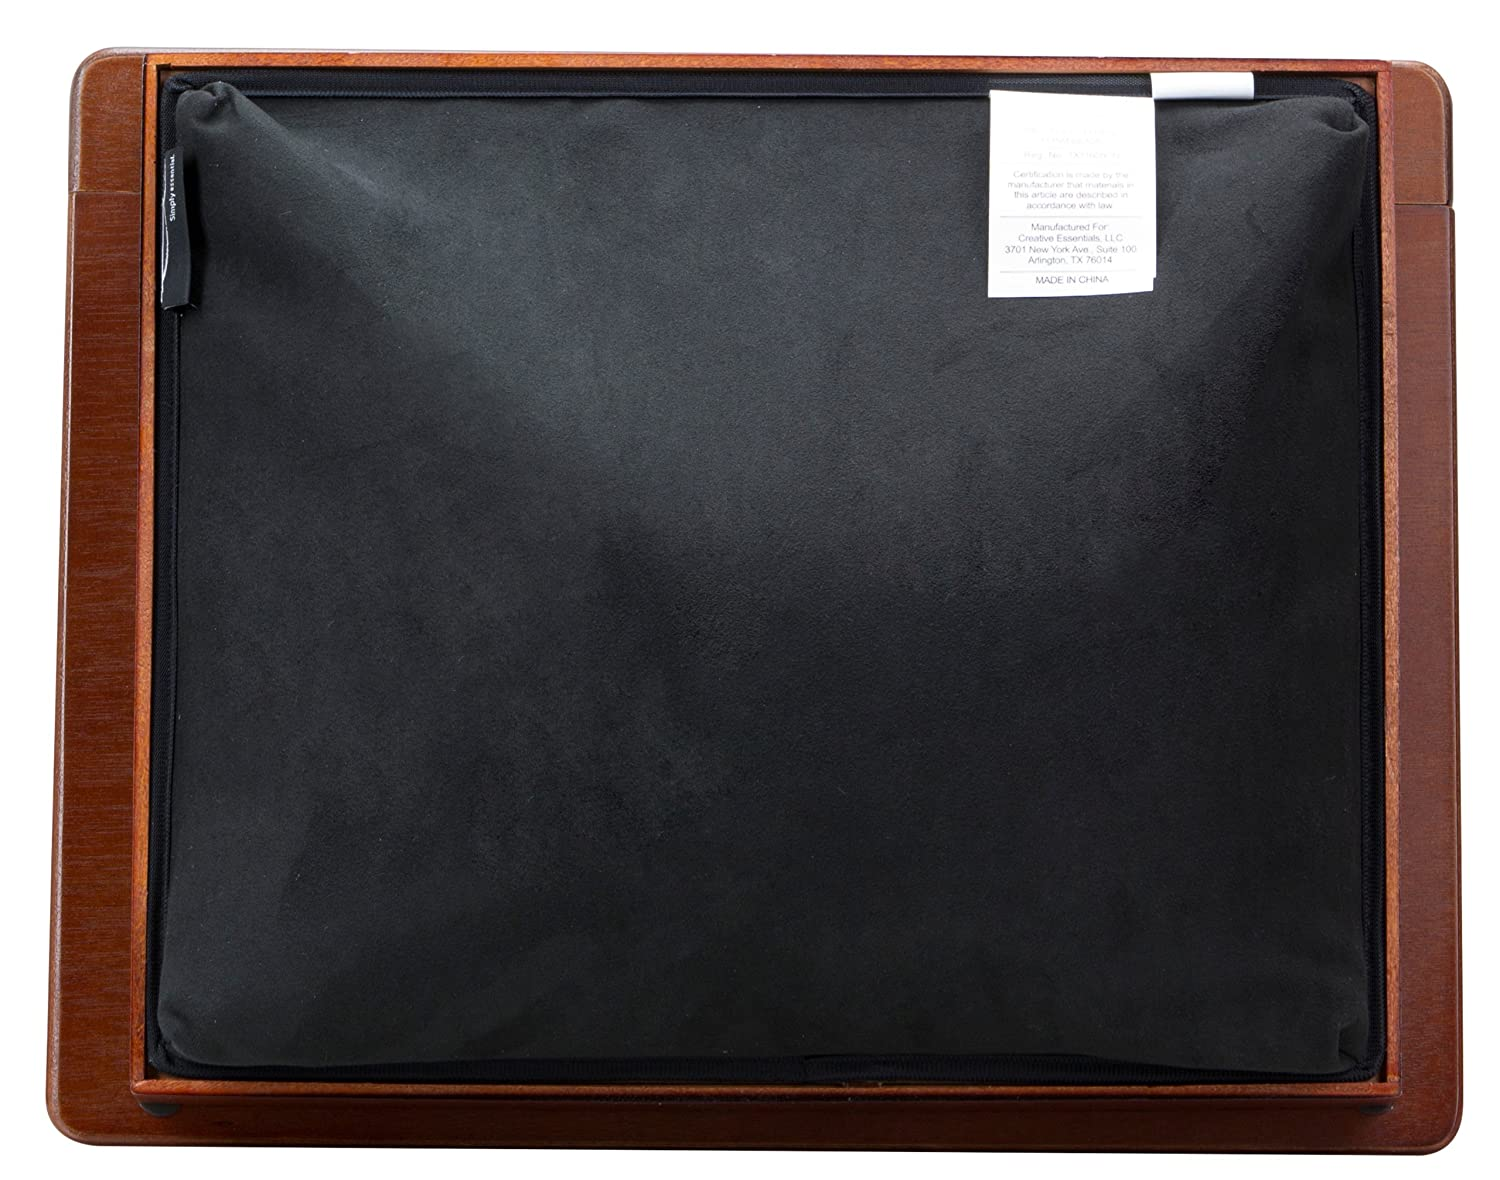 , 368,3/mm; 108/mm; 2,63/kg 486 /Office Lapdesk 45075/Office/